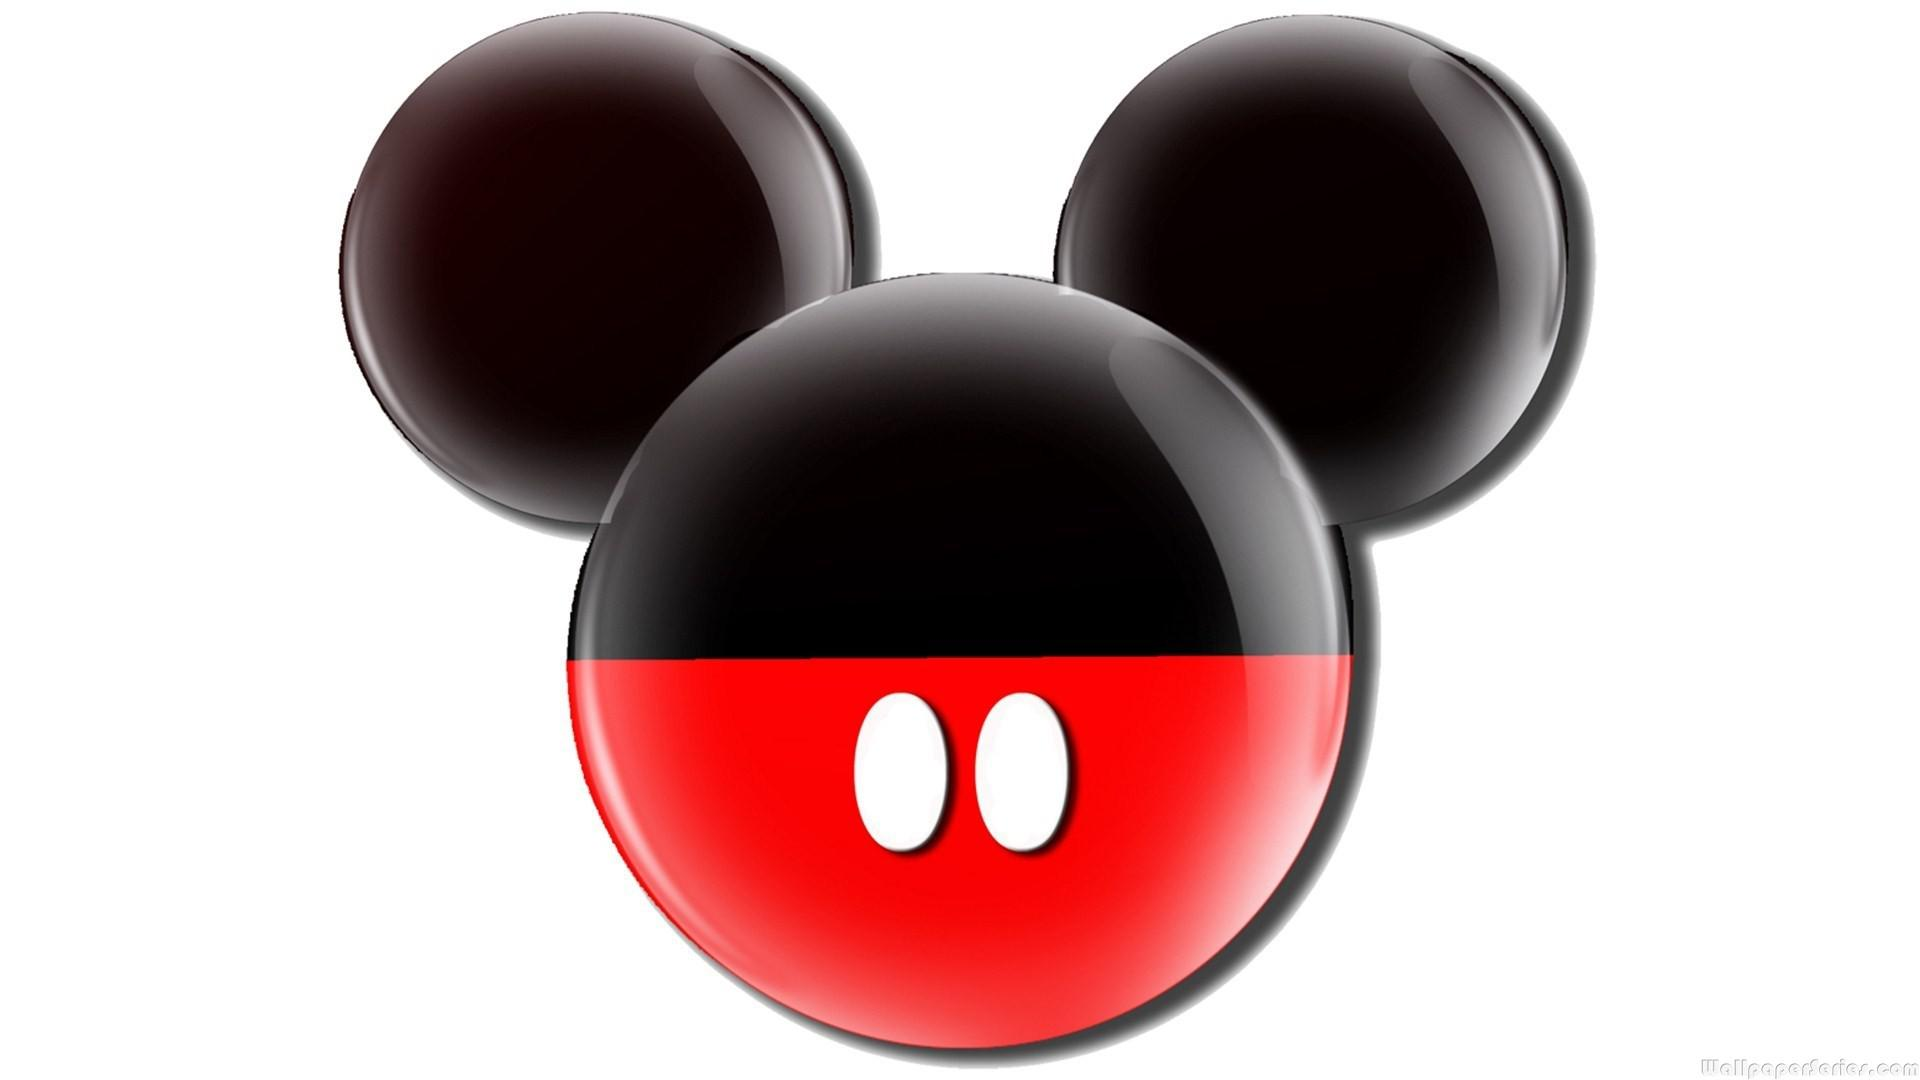 Download: Mickey Mouse Head Desktop